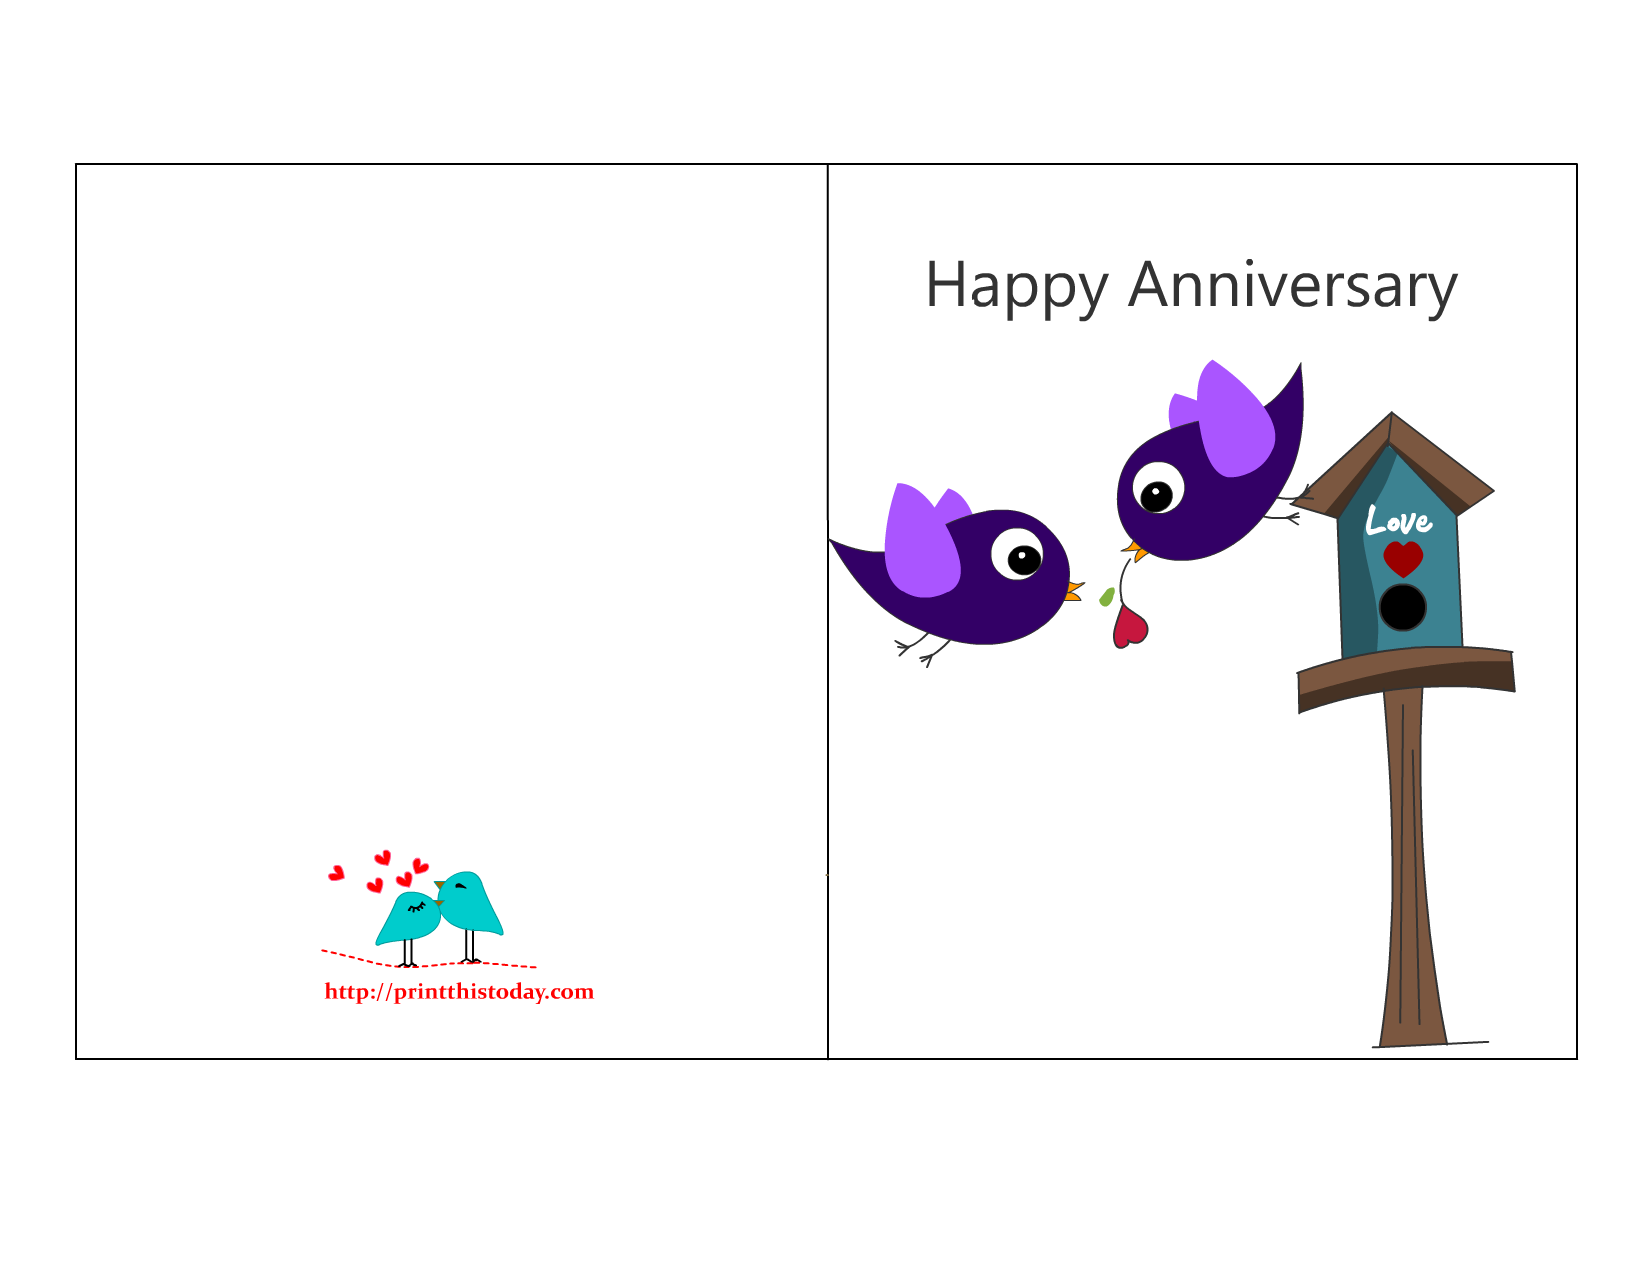 picture about Printable Anniversary Cards identify Free of charge Anniversary Playing cards in direction of Print Totally free Printable Anniversary